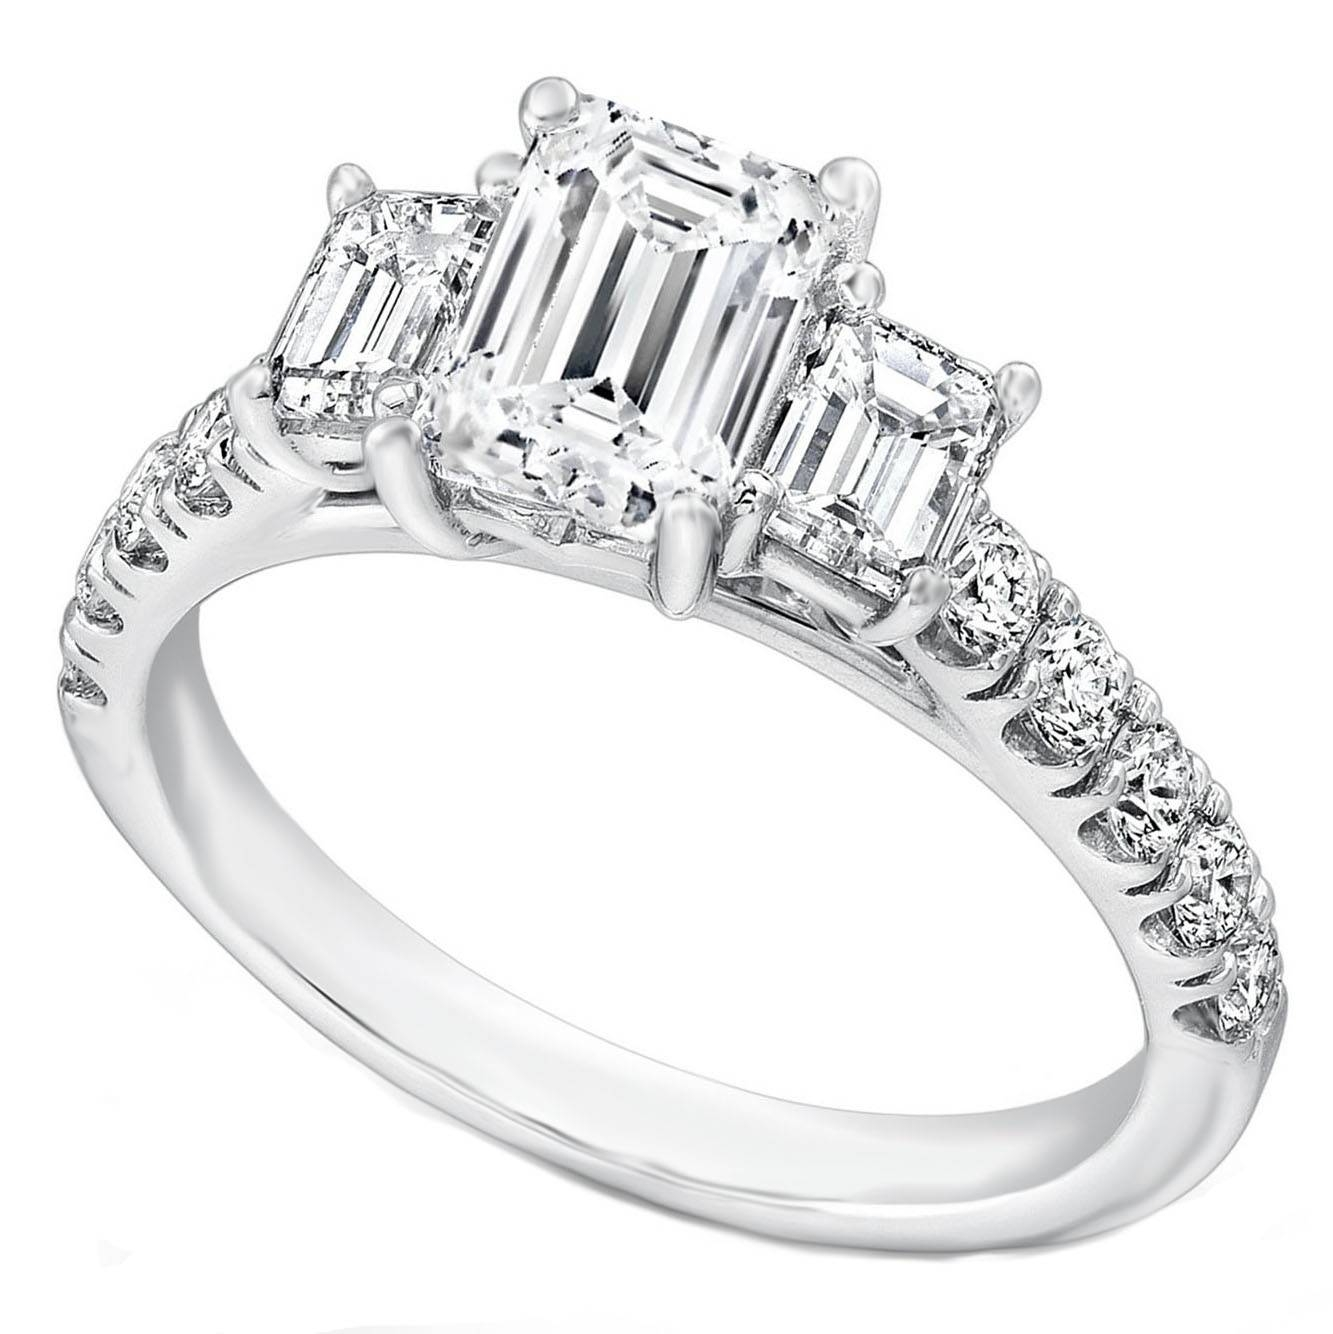 Engagement Ring  Three Stone Emerald Cut Diamond Cathedral Throughout 3 Stone Emerald Cut Diamond Engagement Rings (Gallery 12 of 15)